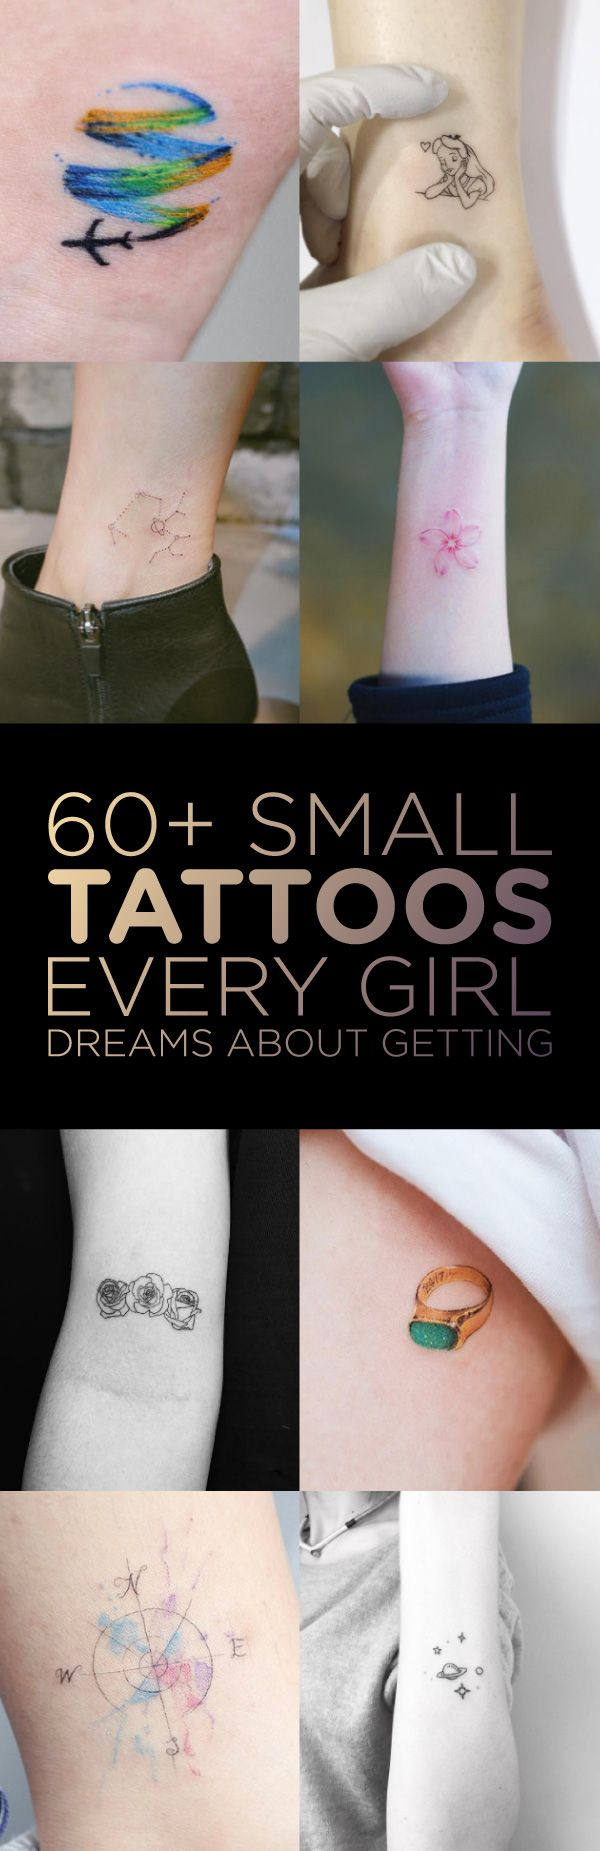 60 Small Tattoos Every Girl Dreams About Getting Tattoos On